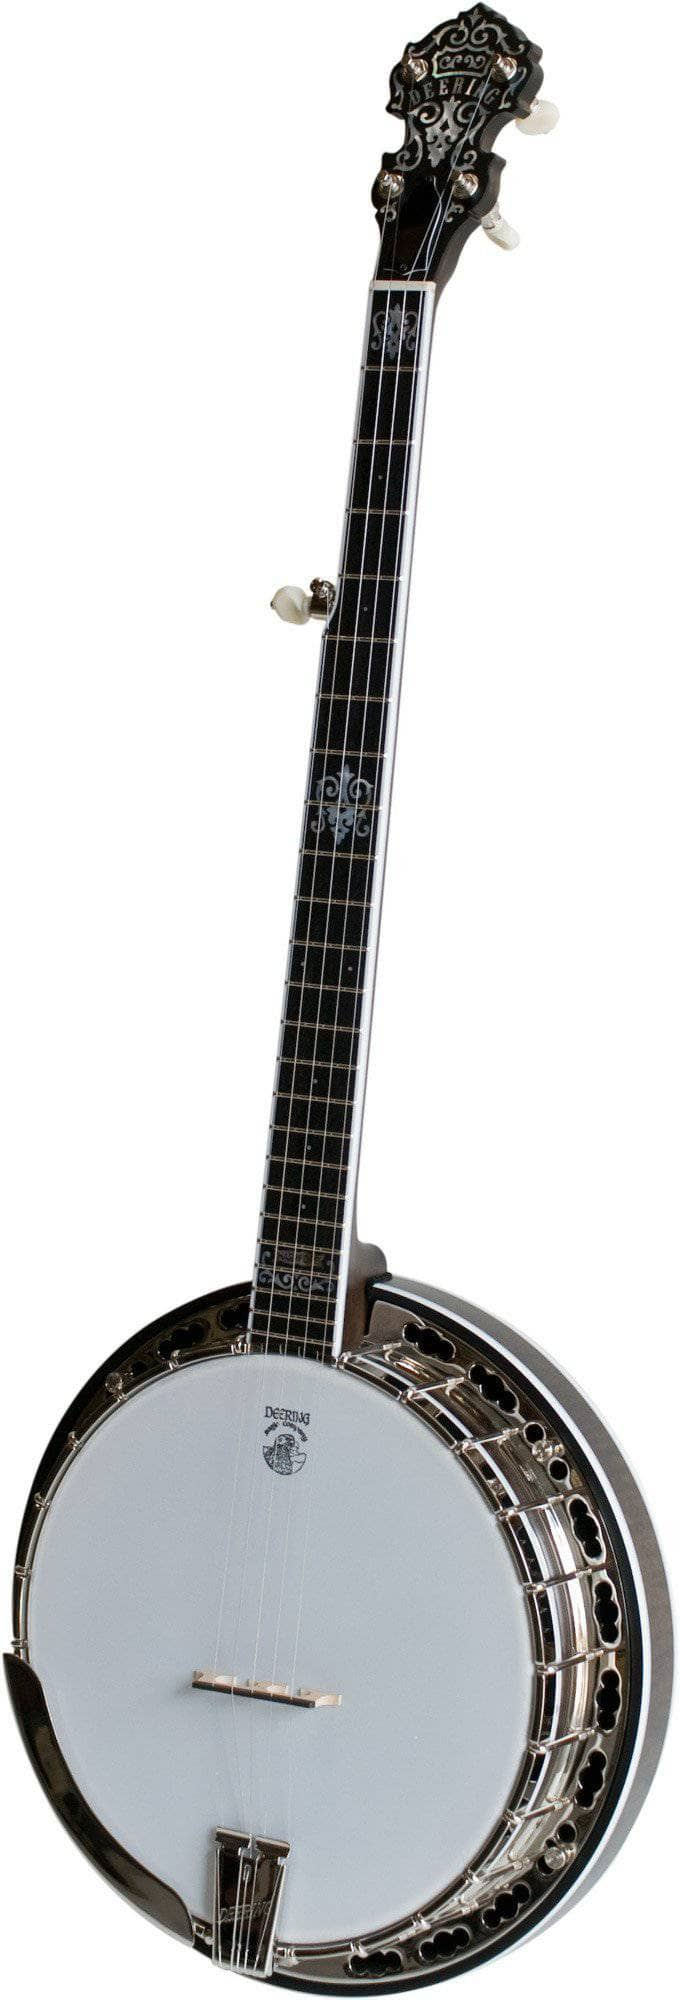 Deering 24 Fret John Hartford Banjo with -06- Bell Bronze Tone Ring - Banjo Studio